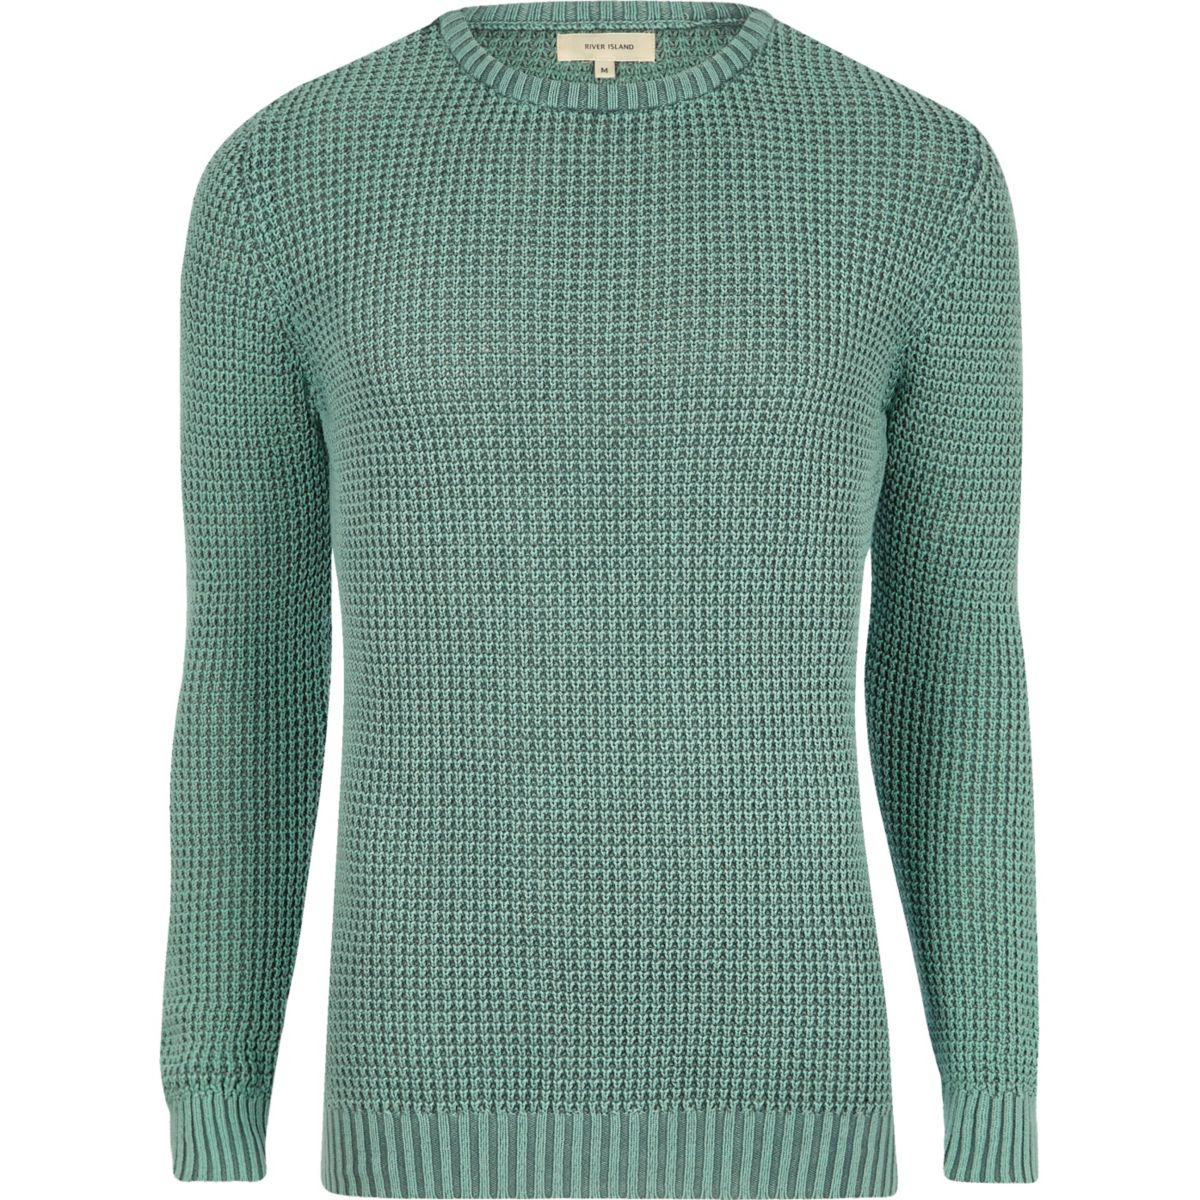 Light green acid wash slim fit knit sweater